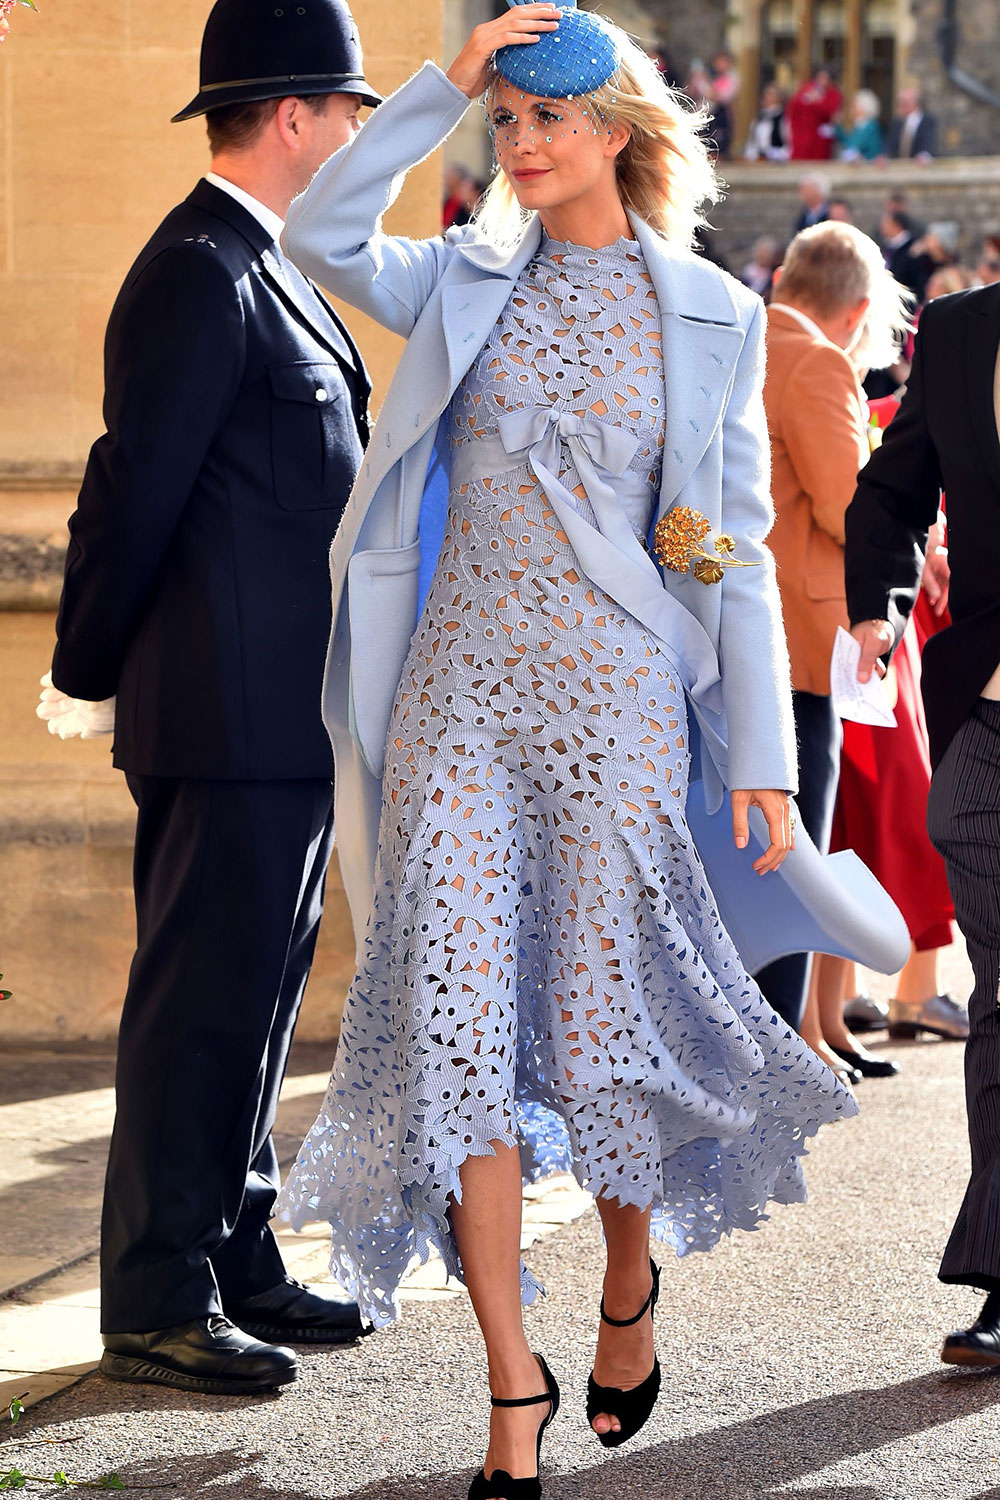 What to Wear to a Winter Wedding? The Perfect Outfit for a